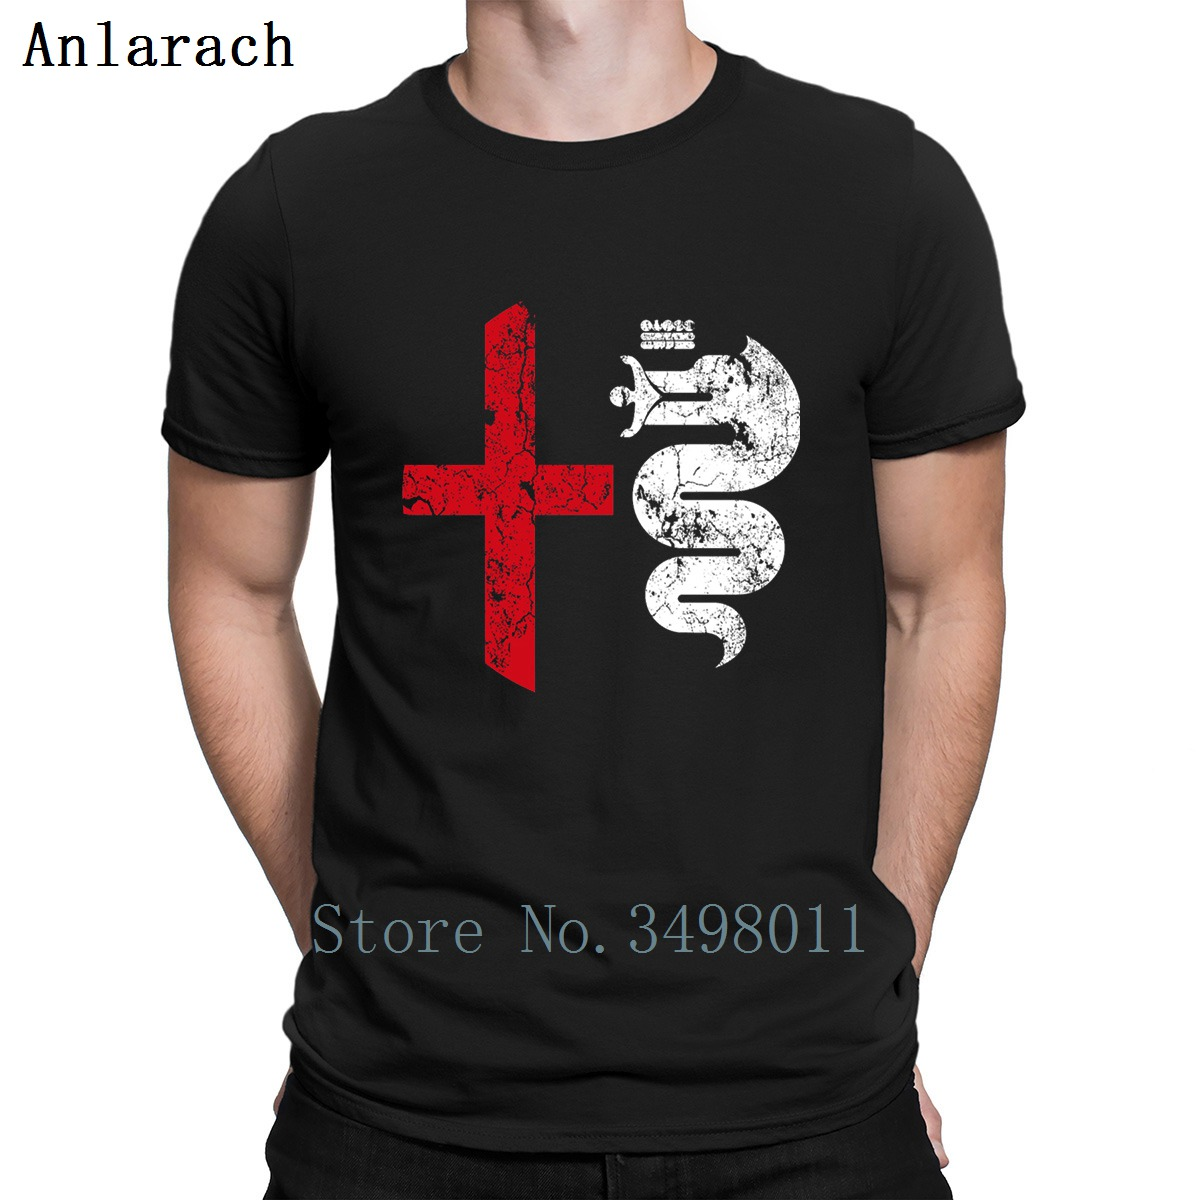 Alfa Romeo T Shirt Designs Cotton Round Neck Basic Solid Graphic Funny Casual Spring Outfit Shirt